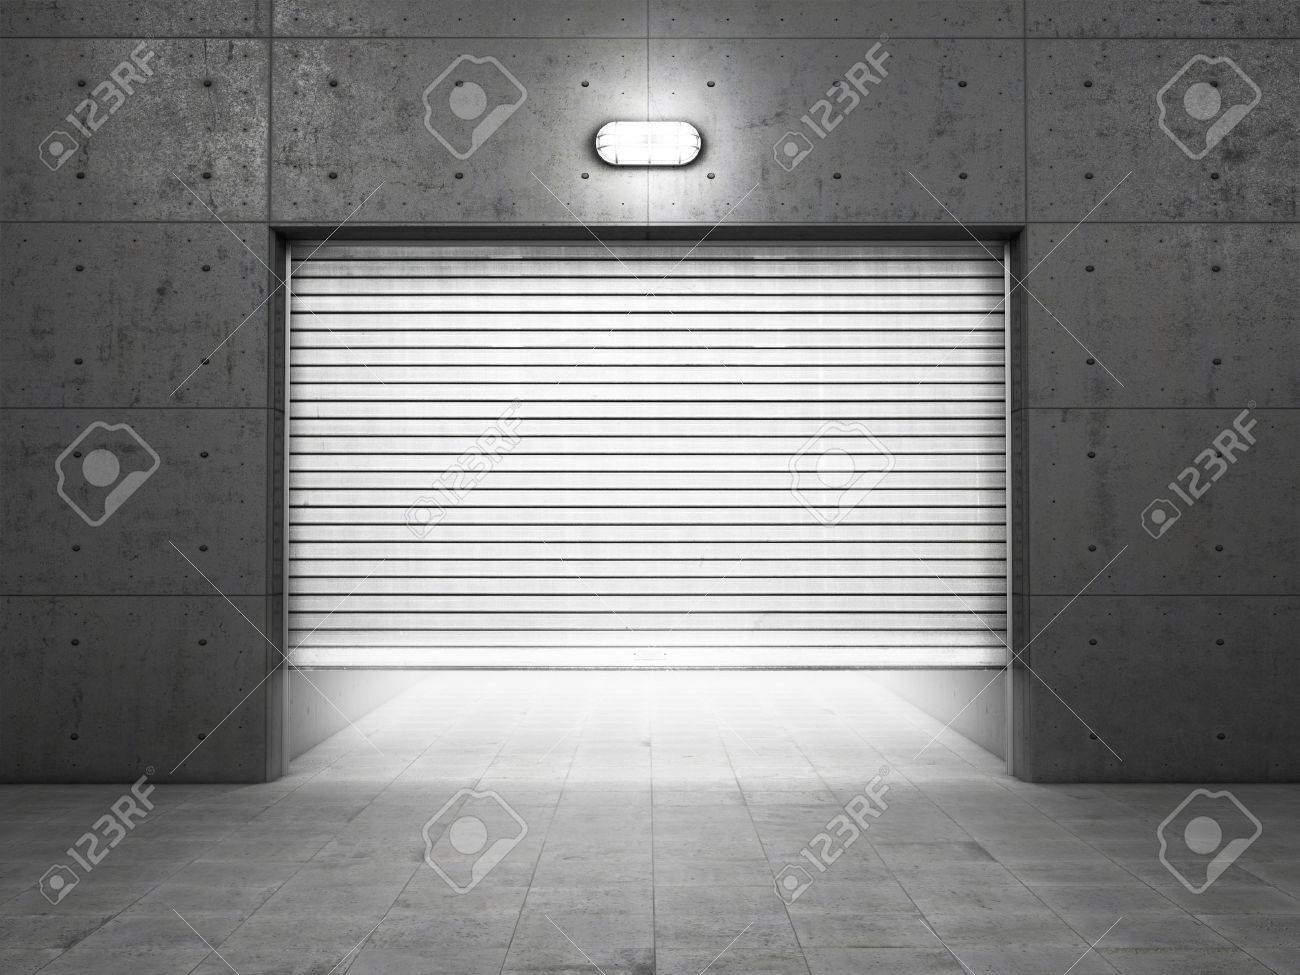 garage building made of concrete with roller shutter doors stock photo